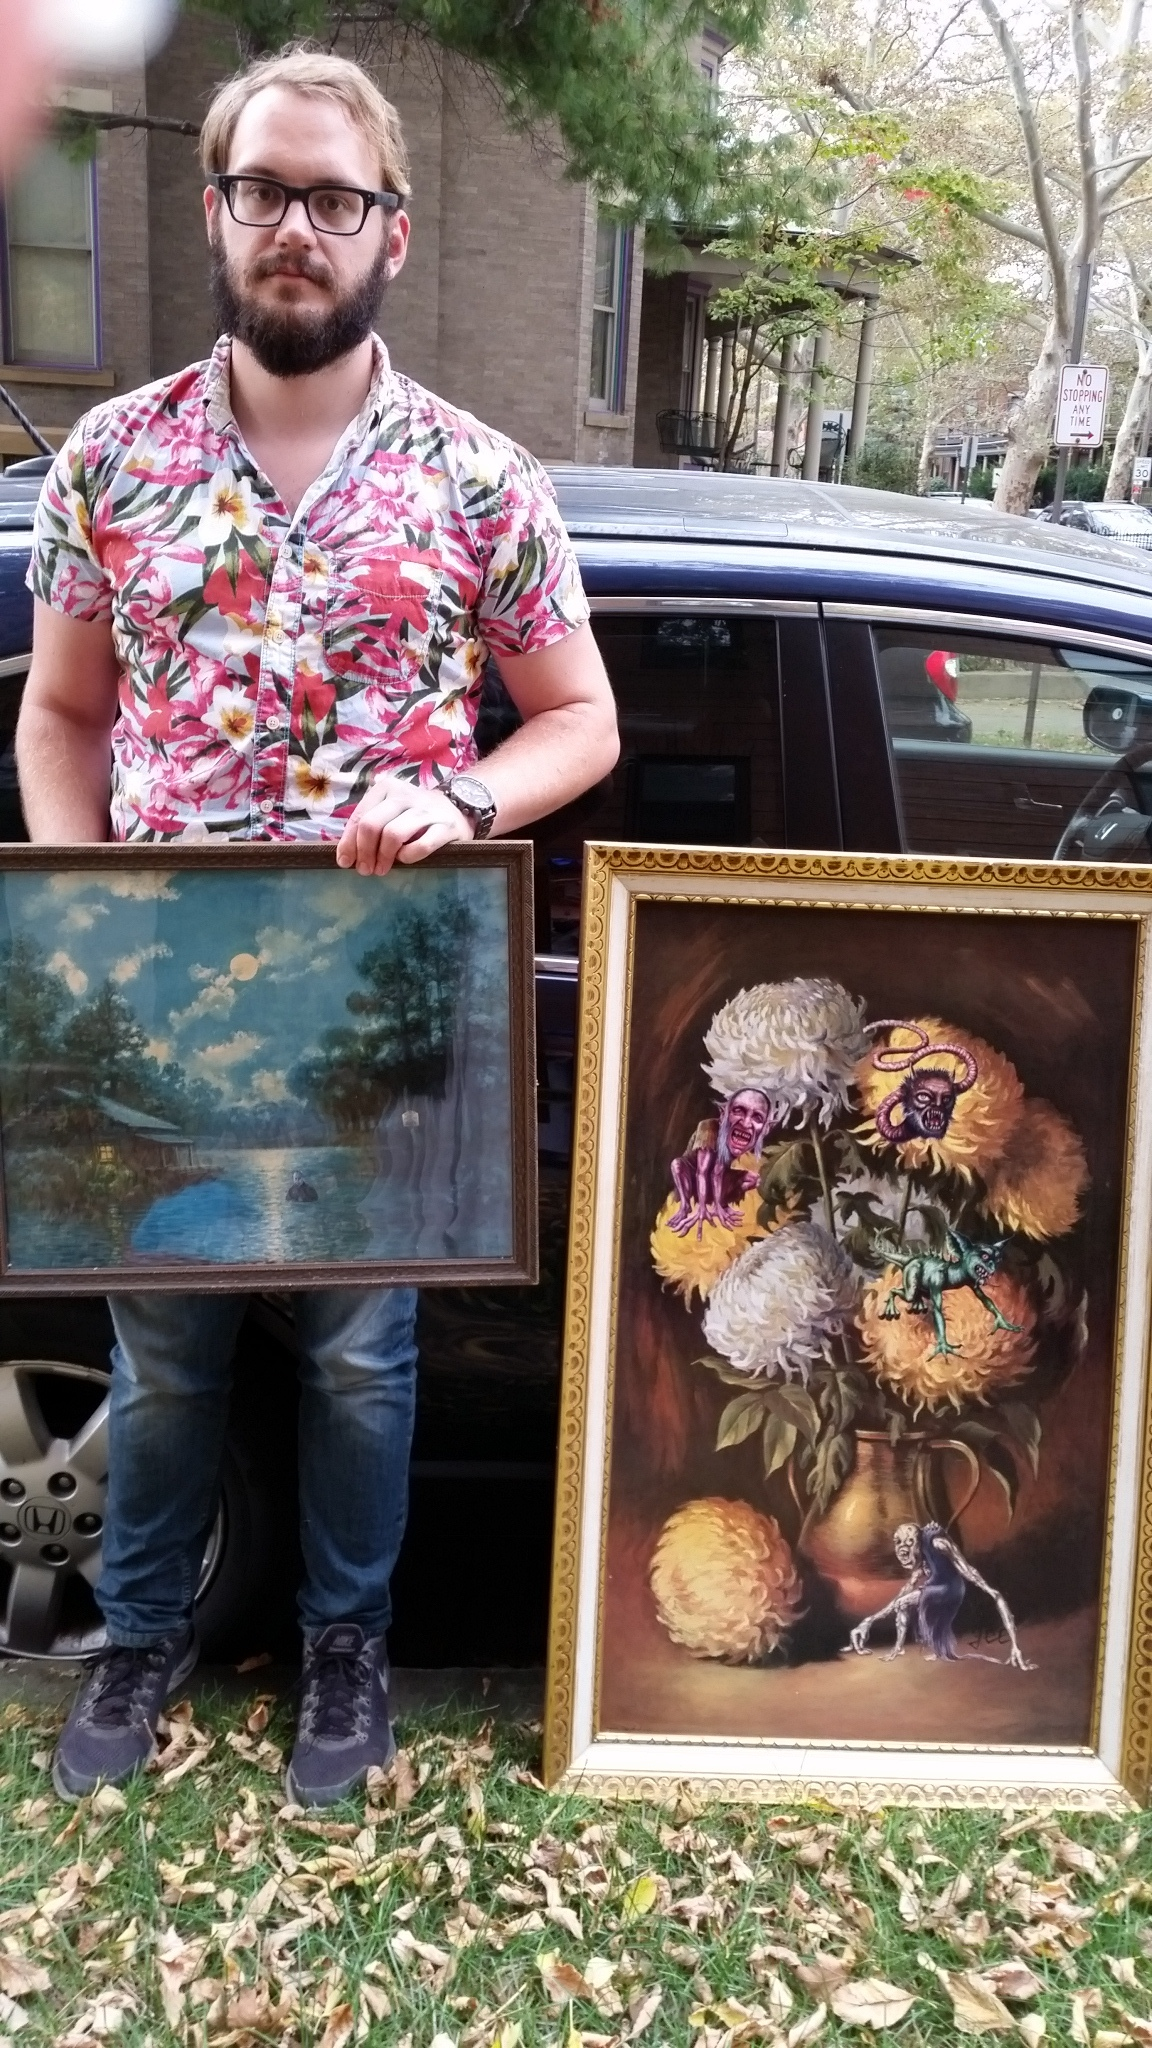 Jason purchases his first art! (Jenny helps with the purchase)